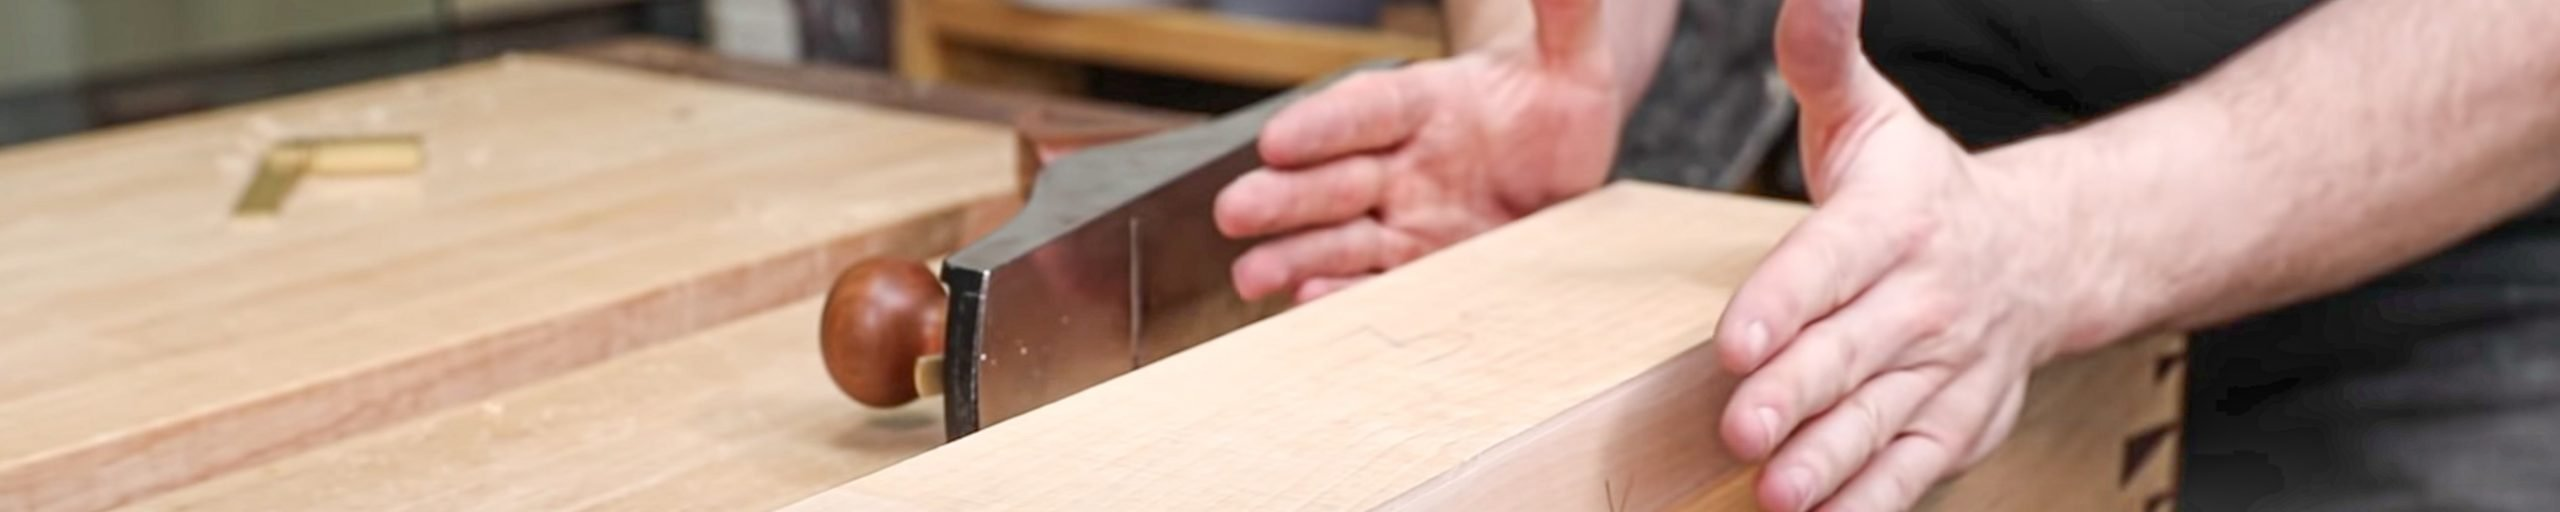 Thicknessing wood by Hand